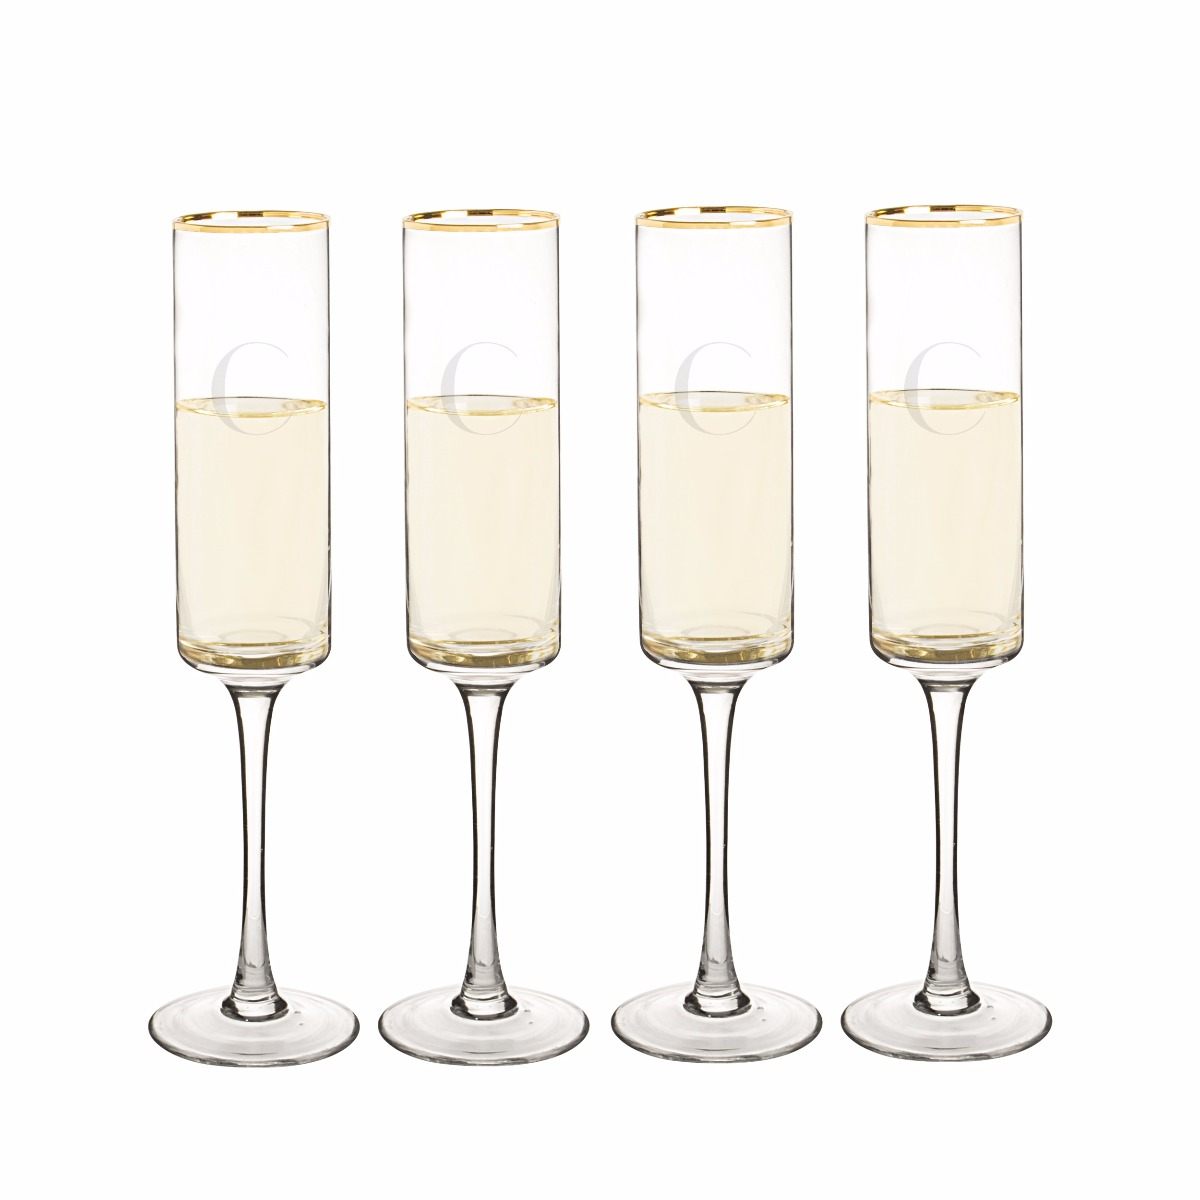 Personalized Gold Rim Champagne Flutes (set of 4)